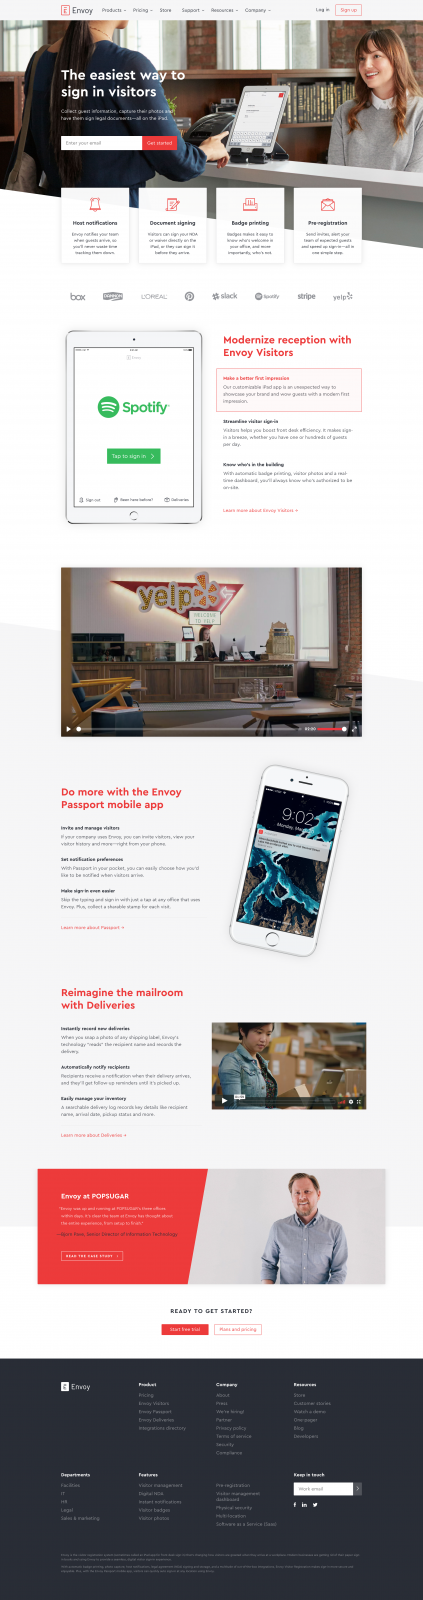 The easiest way to sign in visitors - Envoy